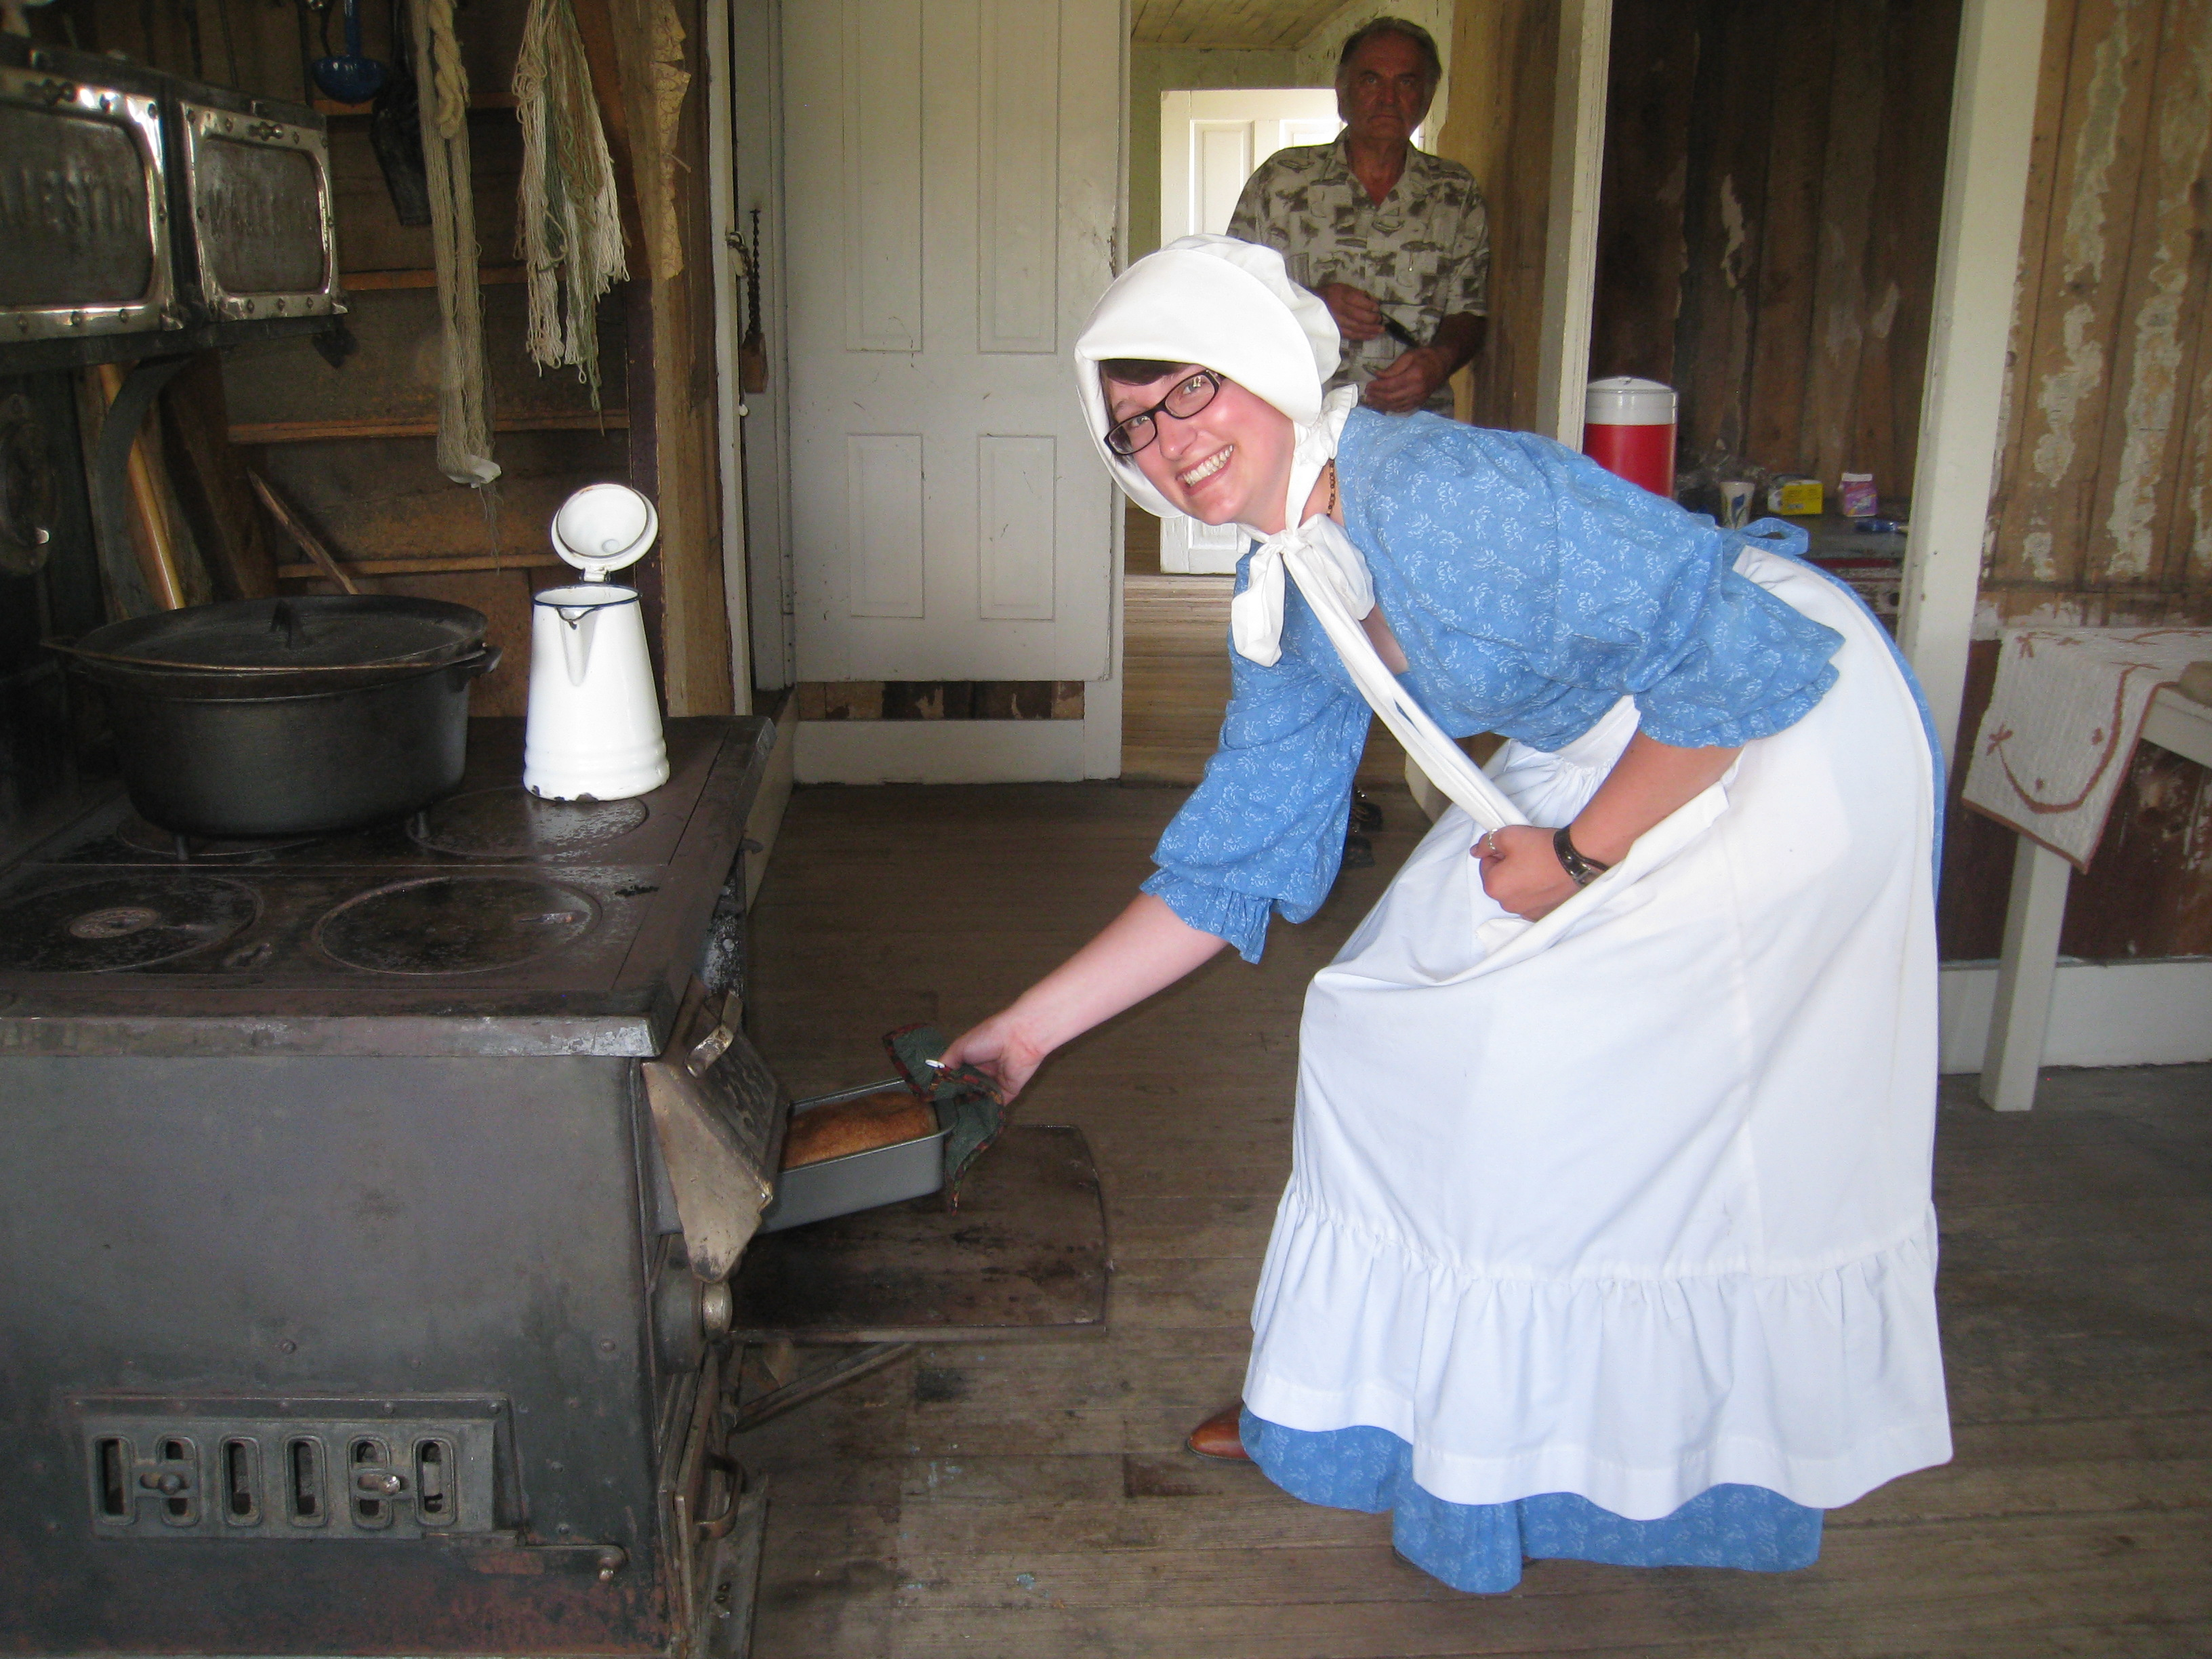 Park staff, dressed in late 1800s clothing, prepare fresh bread in the woodstove